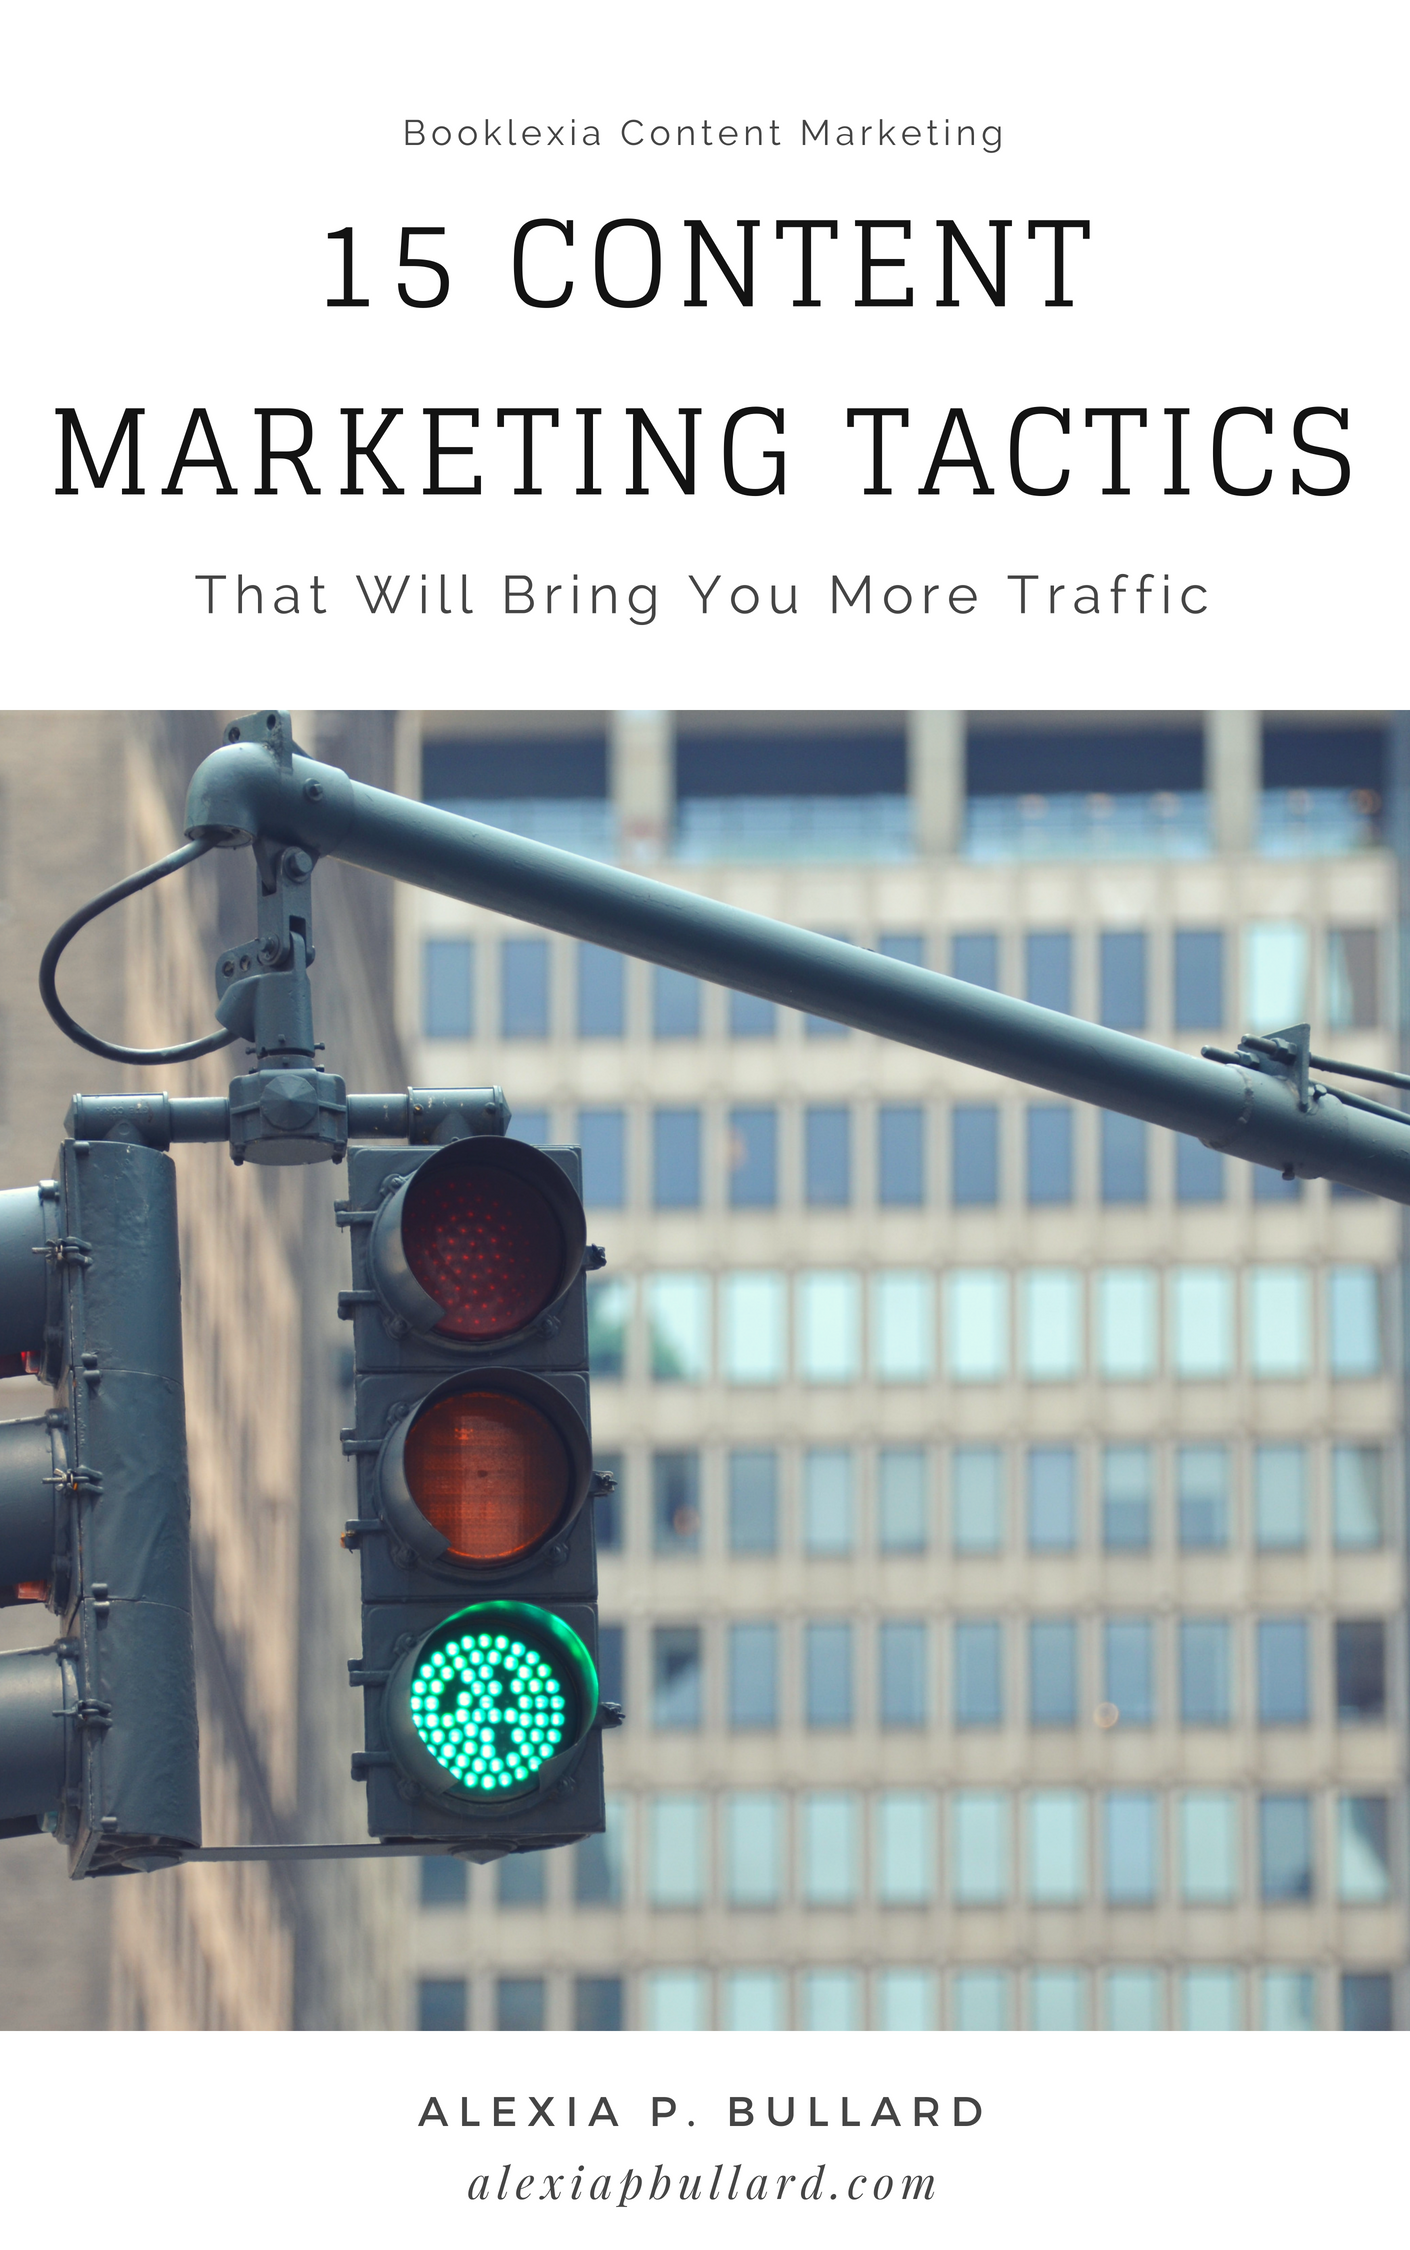 15 Simple Content Marketing Tactics That Will Bring You More Traffic   Booklexia Content Marketing